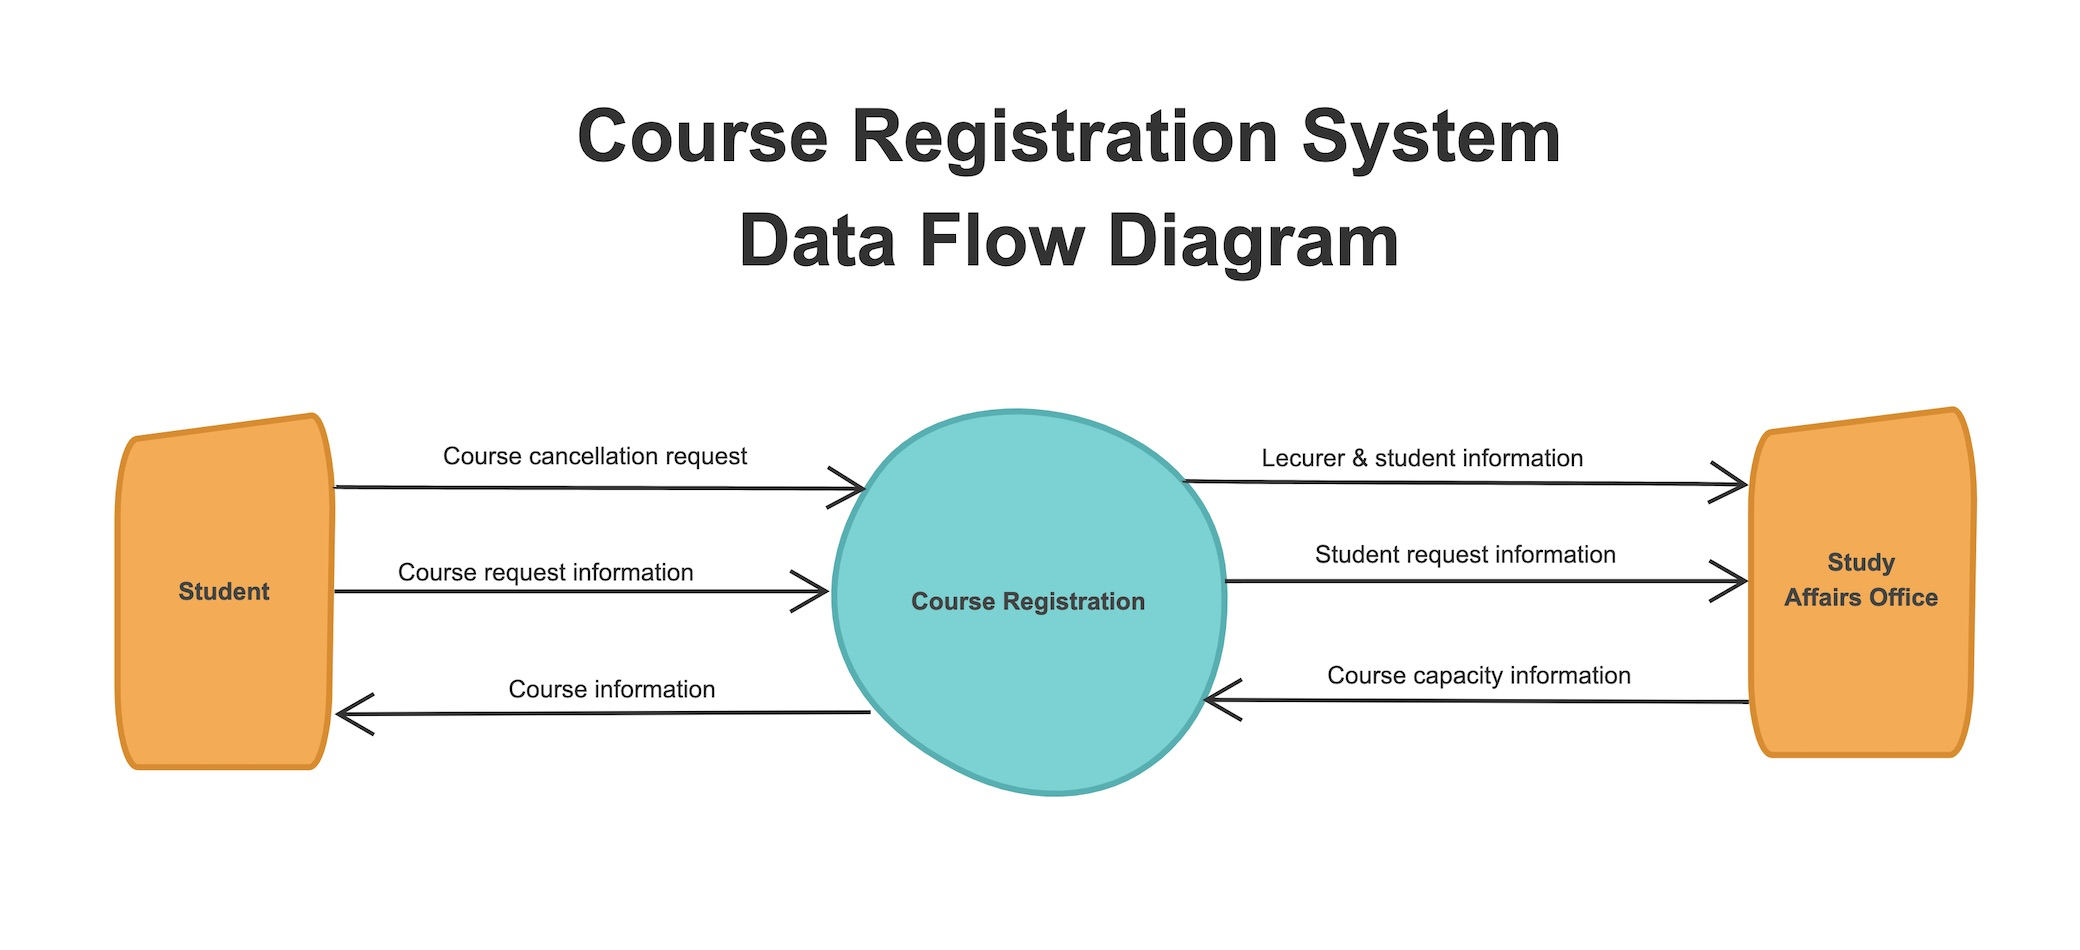 An example of data flowchart of course registration system